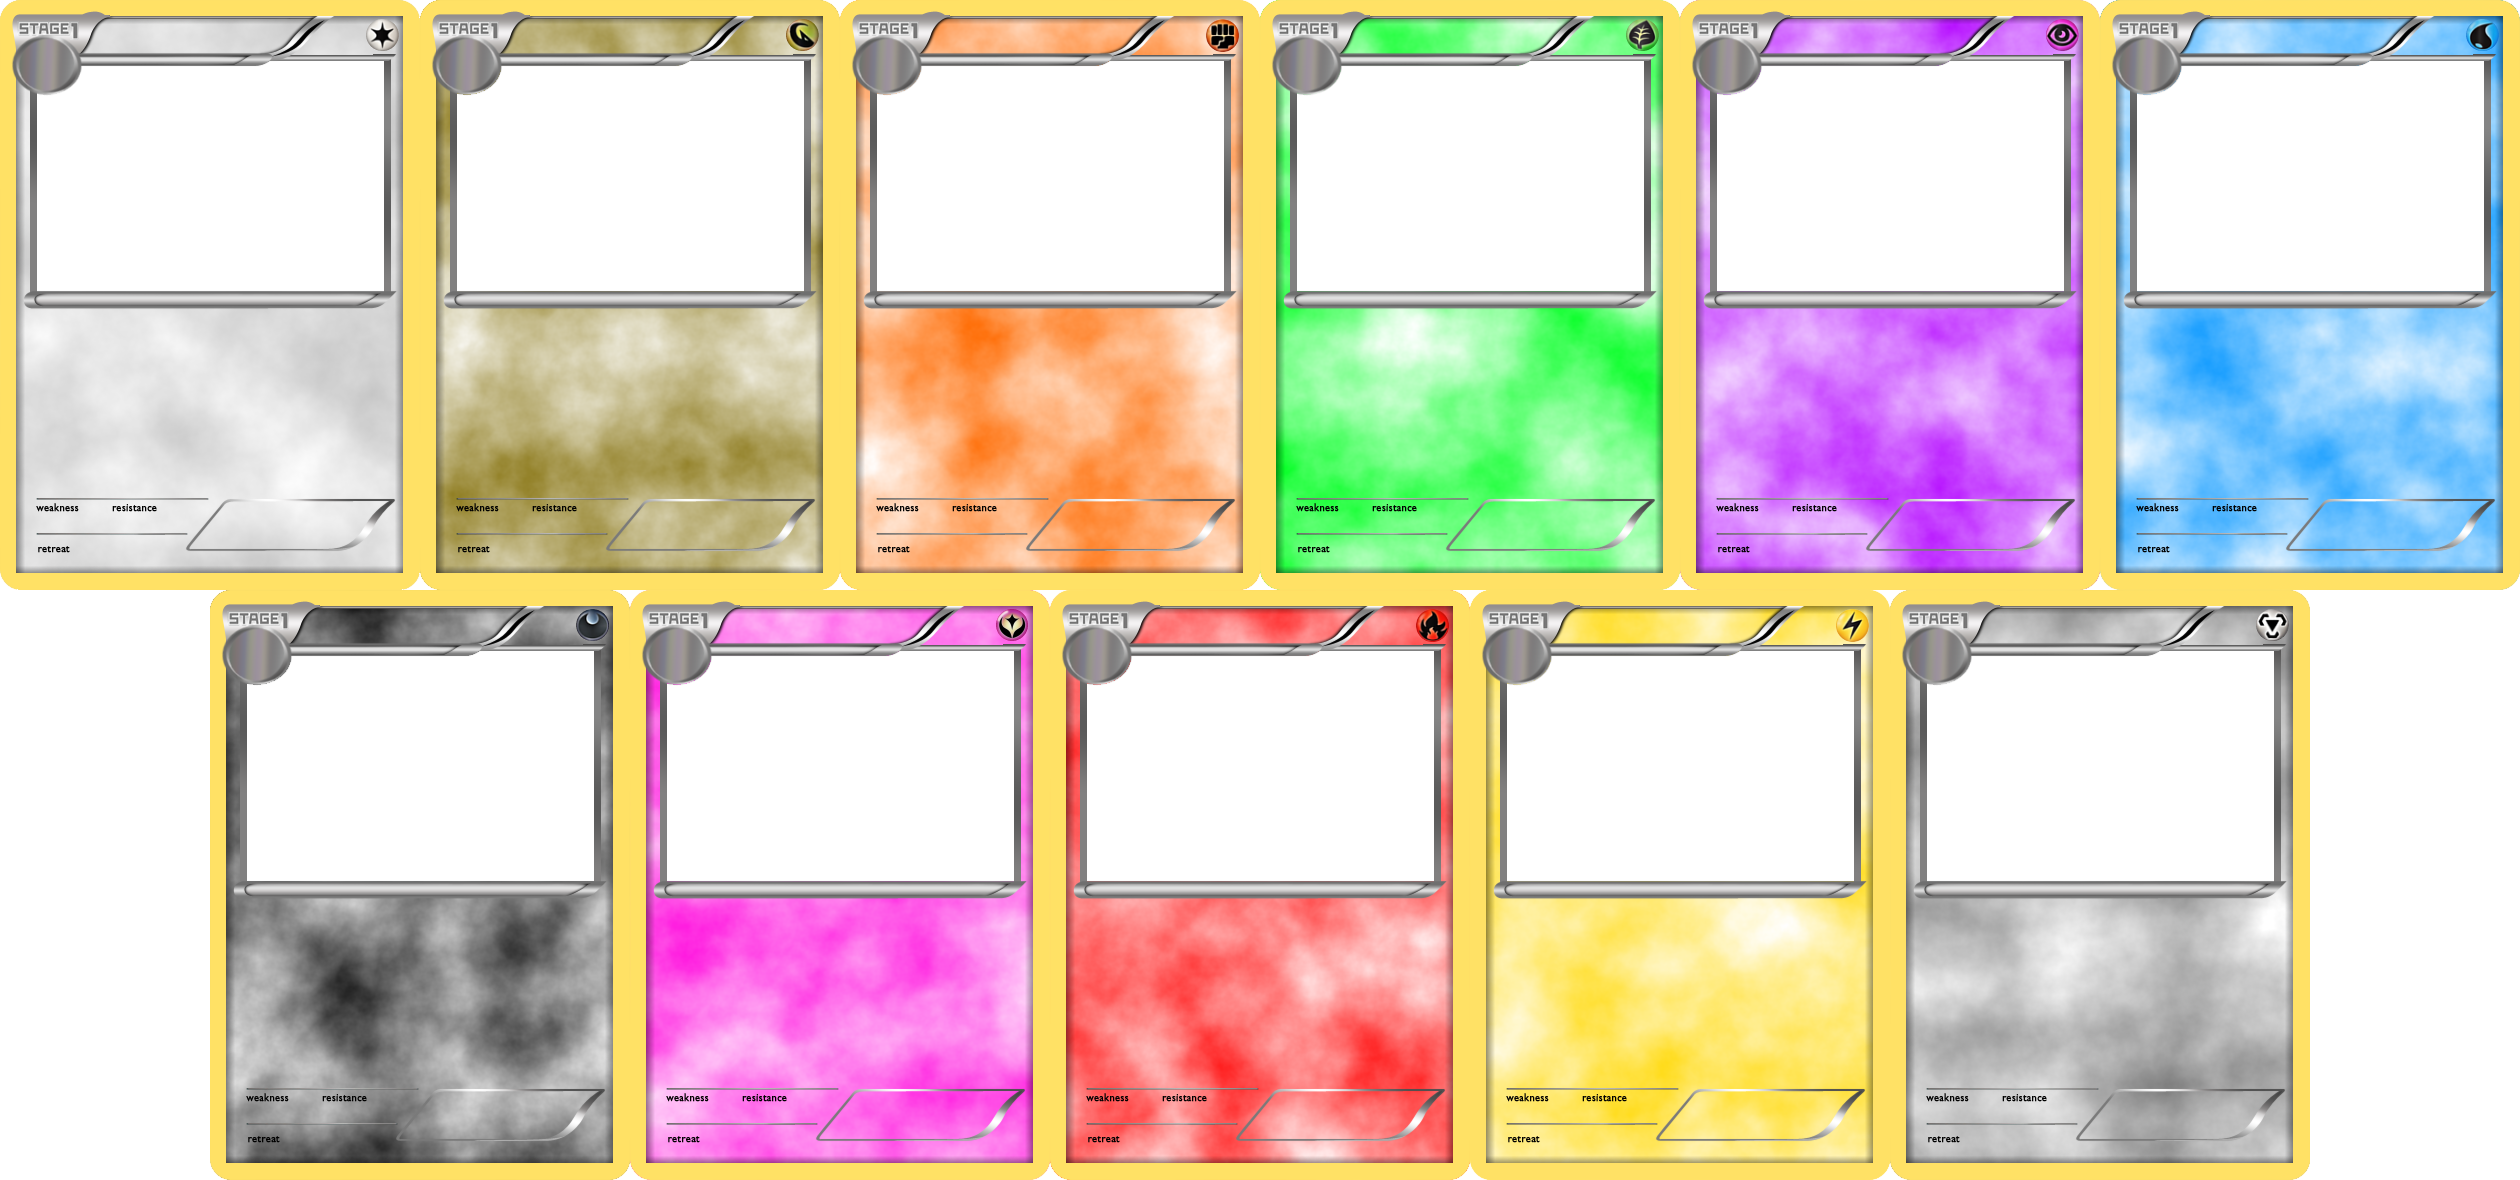 Pokemon blank card templates stage 1 by levelinfinitum for Pokemon templates print